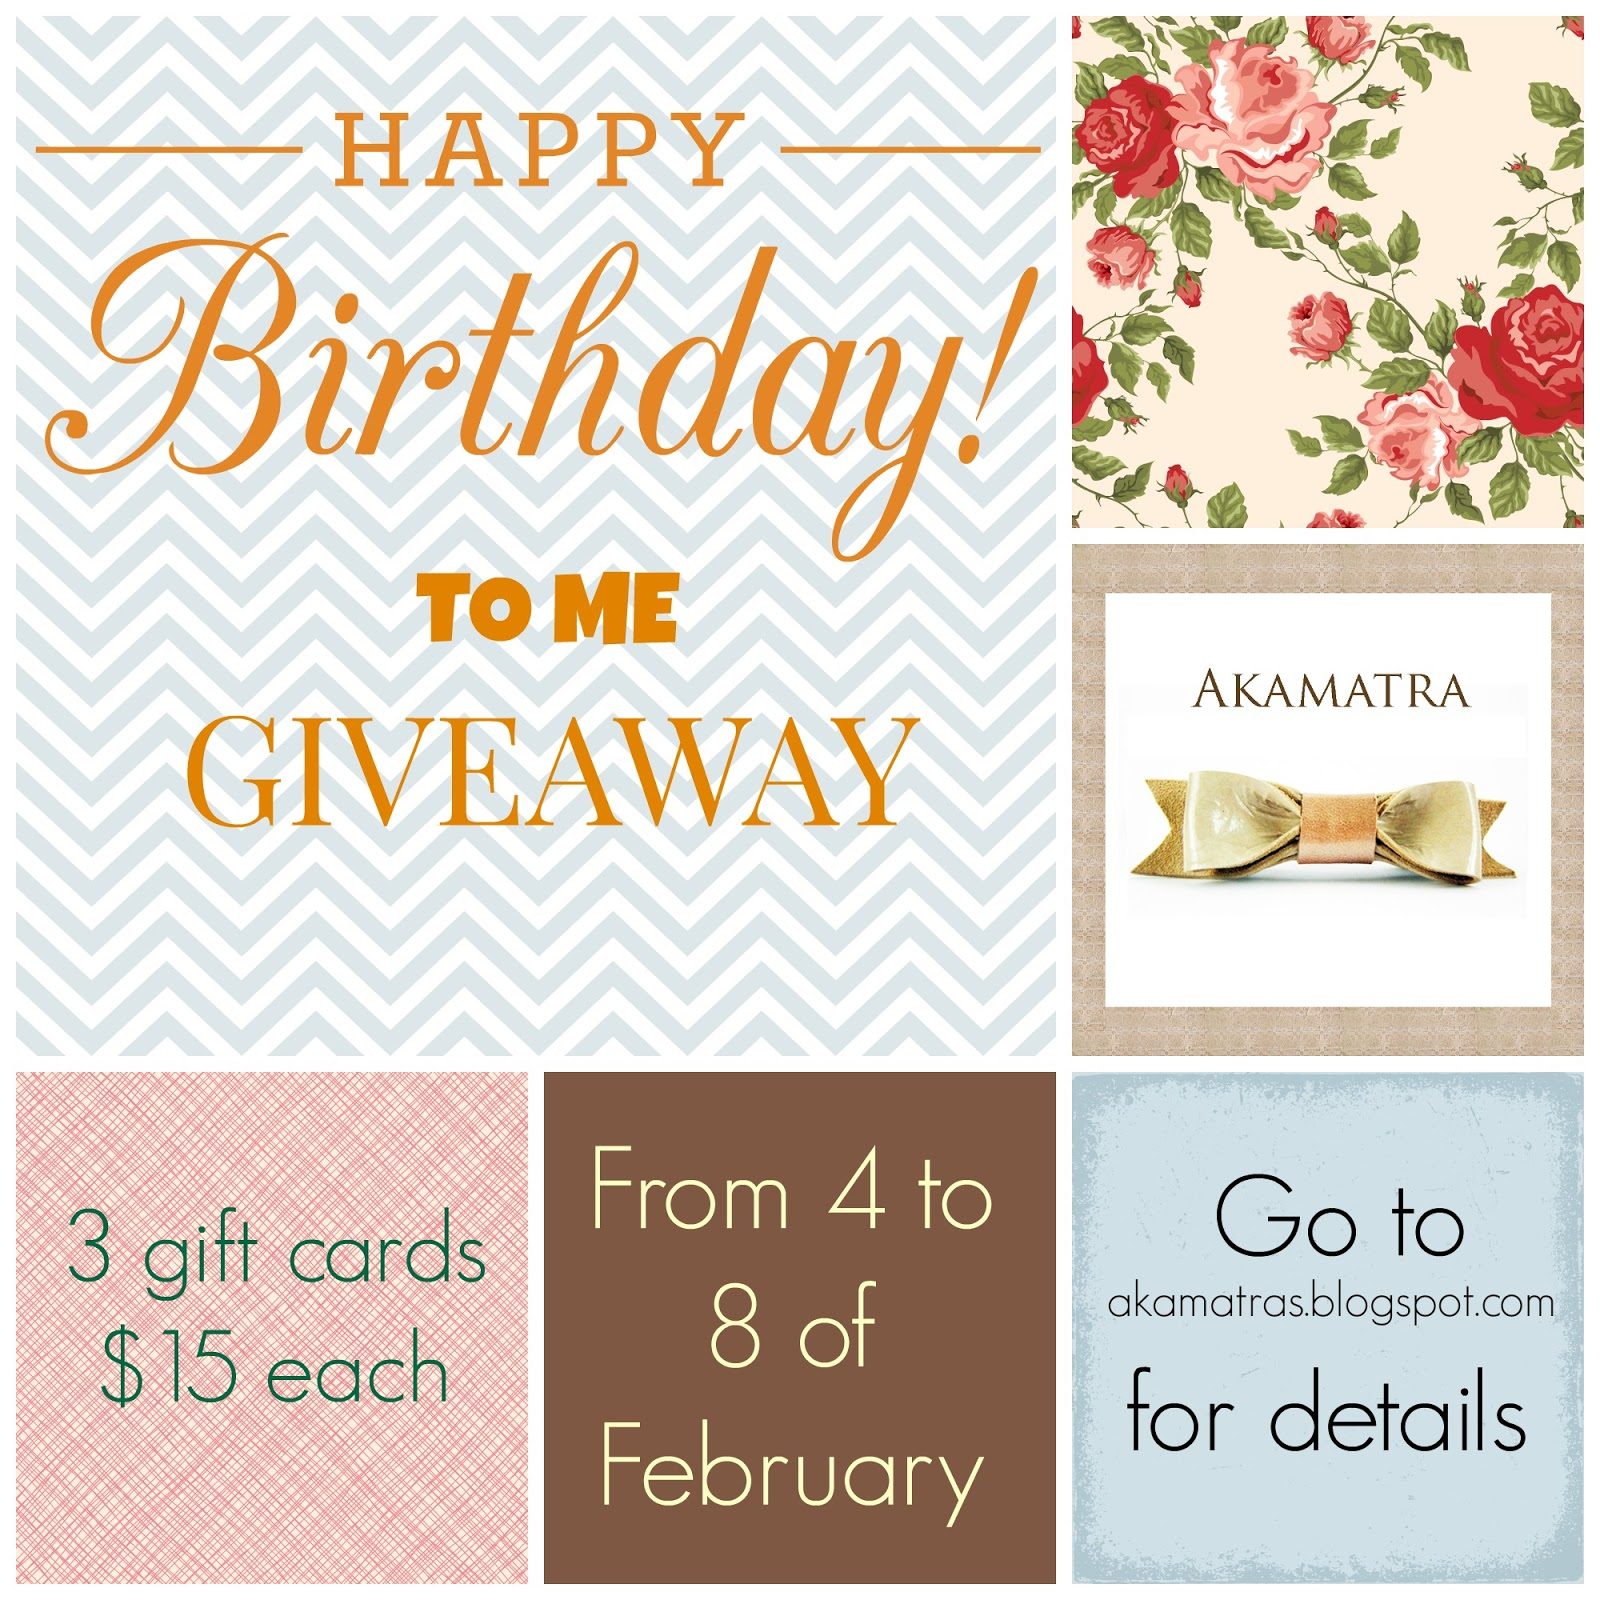 Happy Birthday to me Giveaway!!!